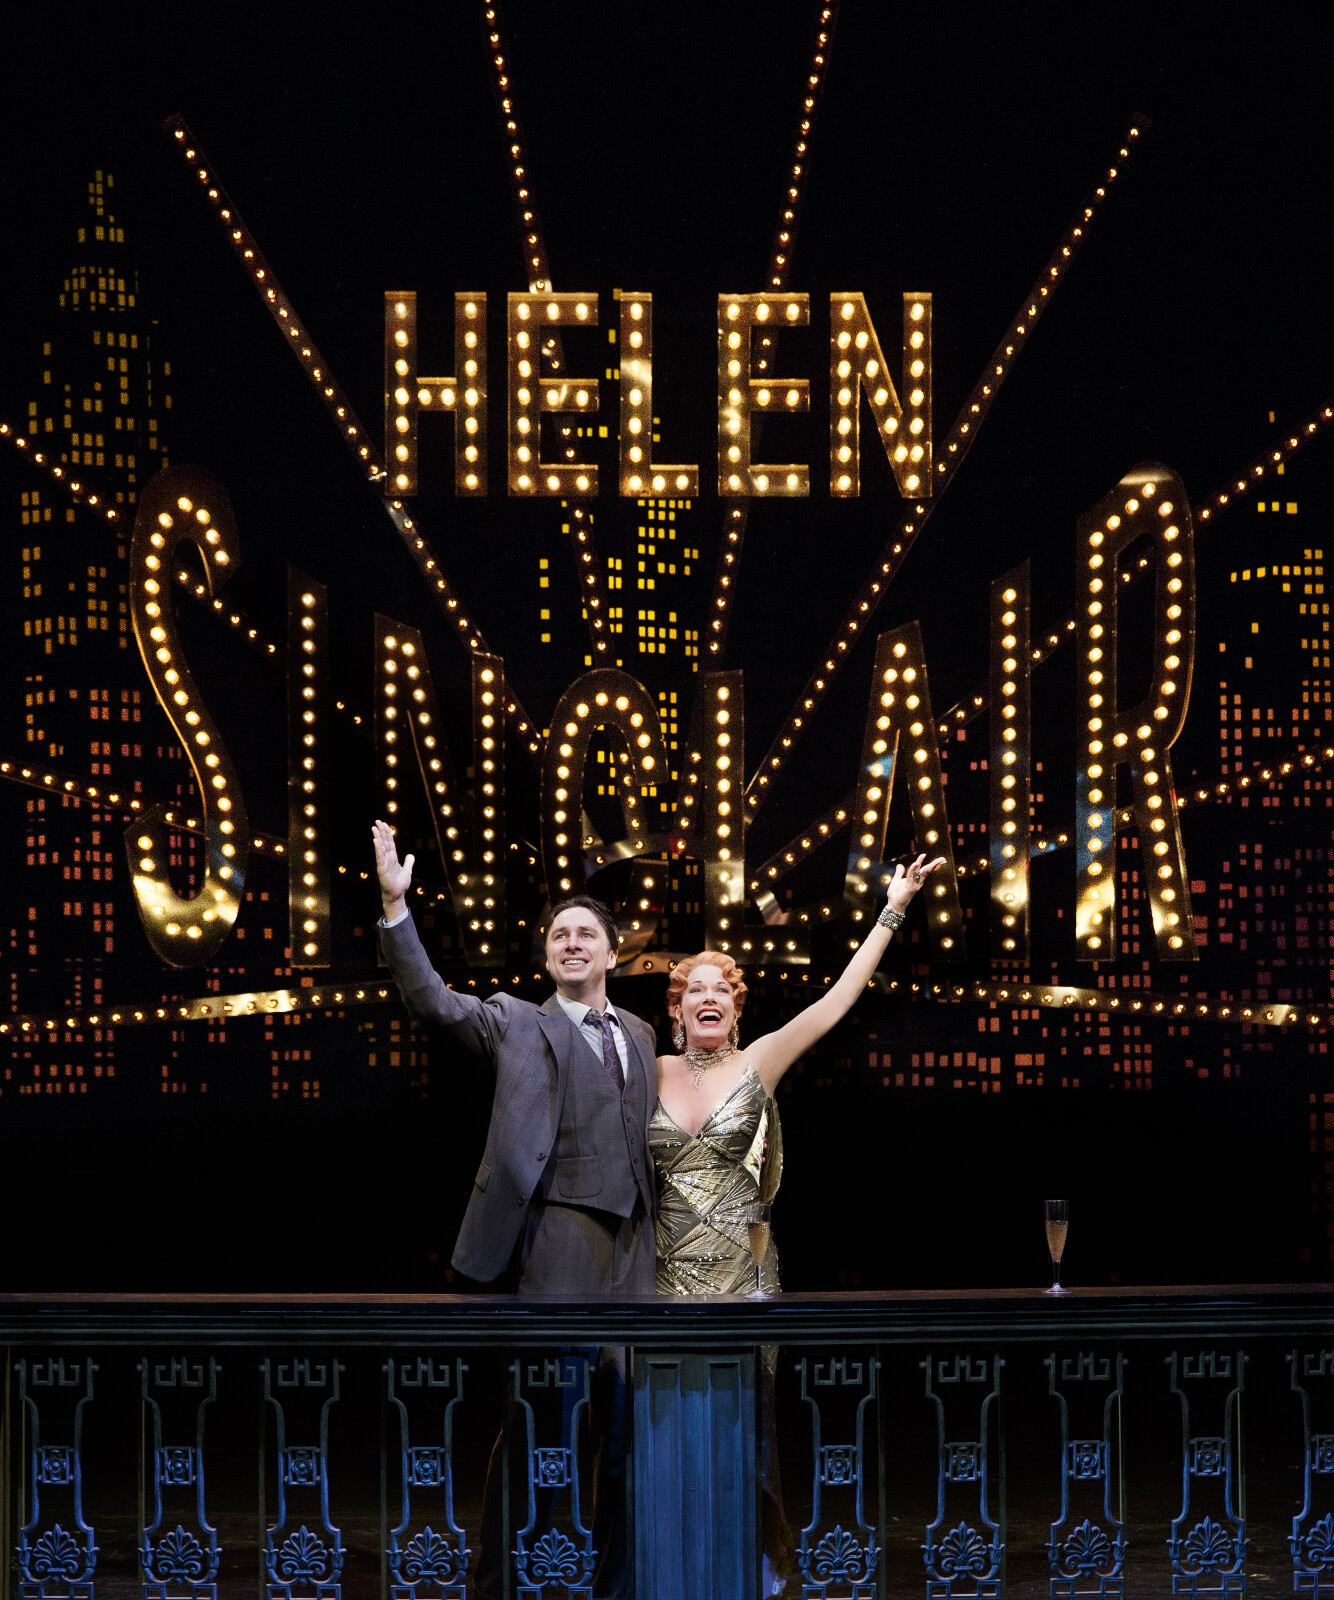 """David Shayne (Zach Braff) and Helen Sinclair (Marin Mazzie) with arms raised in front of the lit marquee of """"Helen Sinclair"""" spelled in lights."""